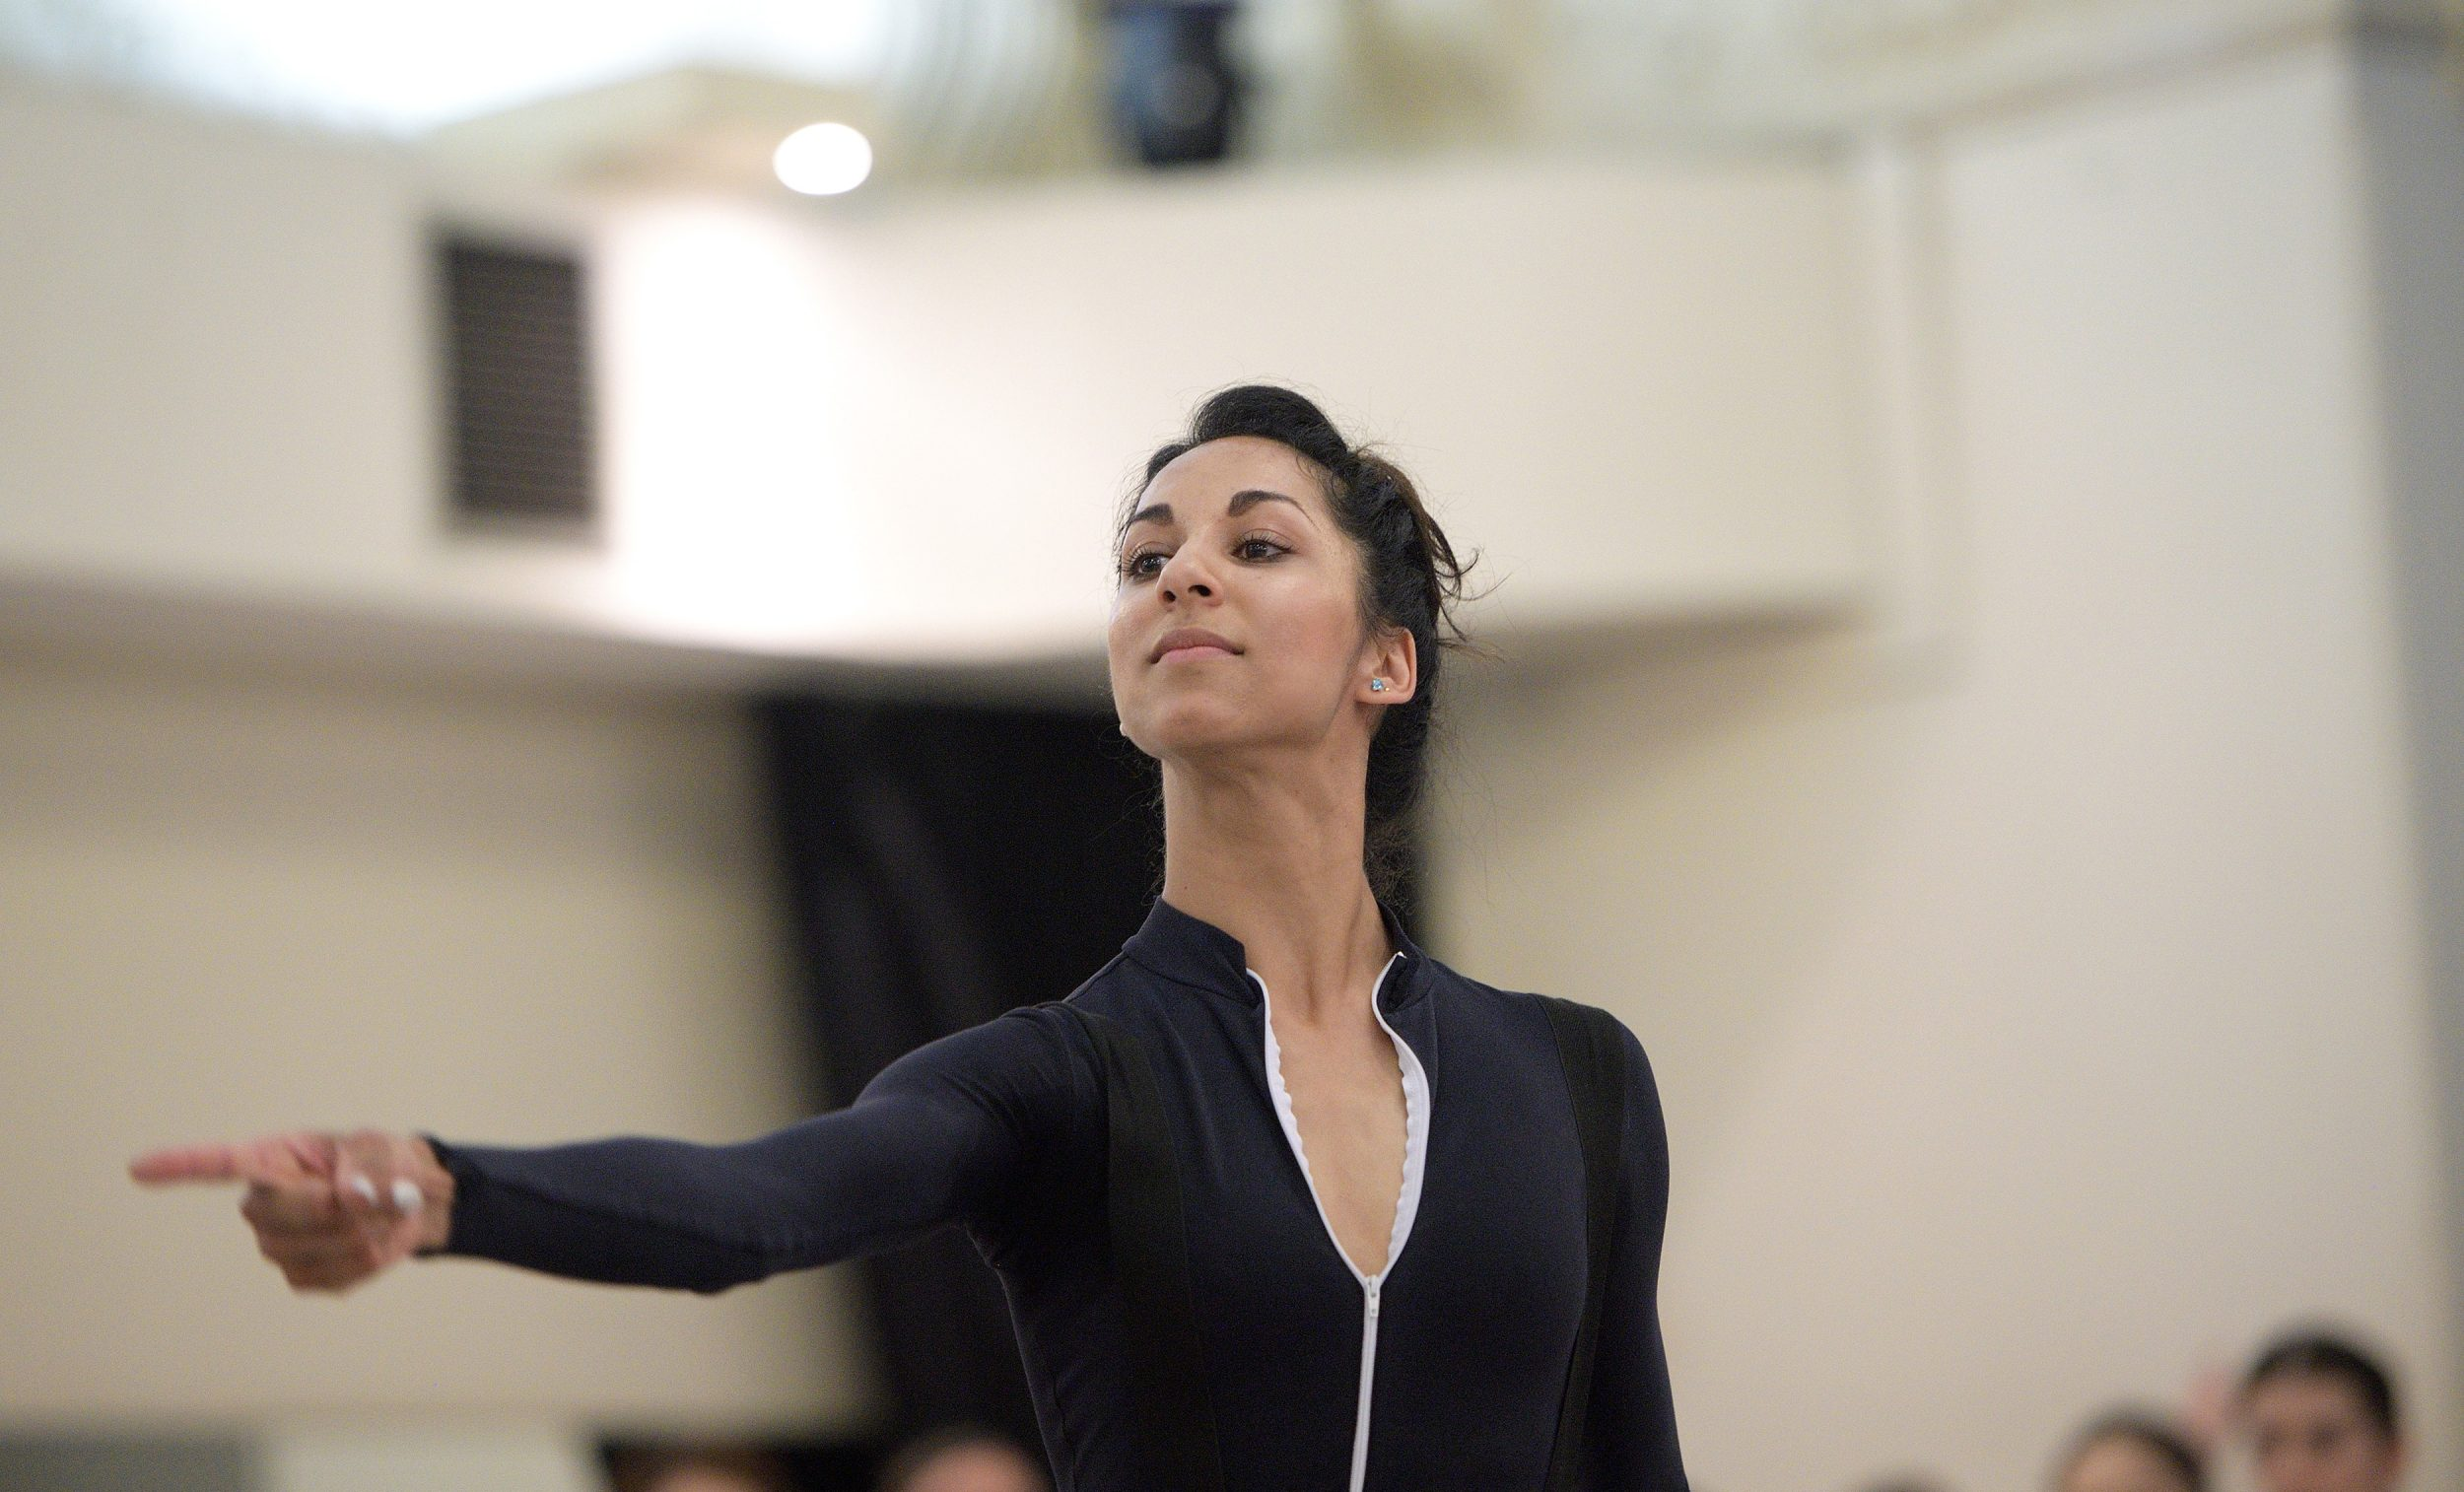 Sarah Kundi rehearsing The Sleeping Beauty © Laurent Liotardo (2)_WEB